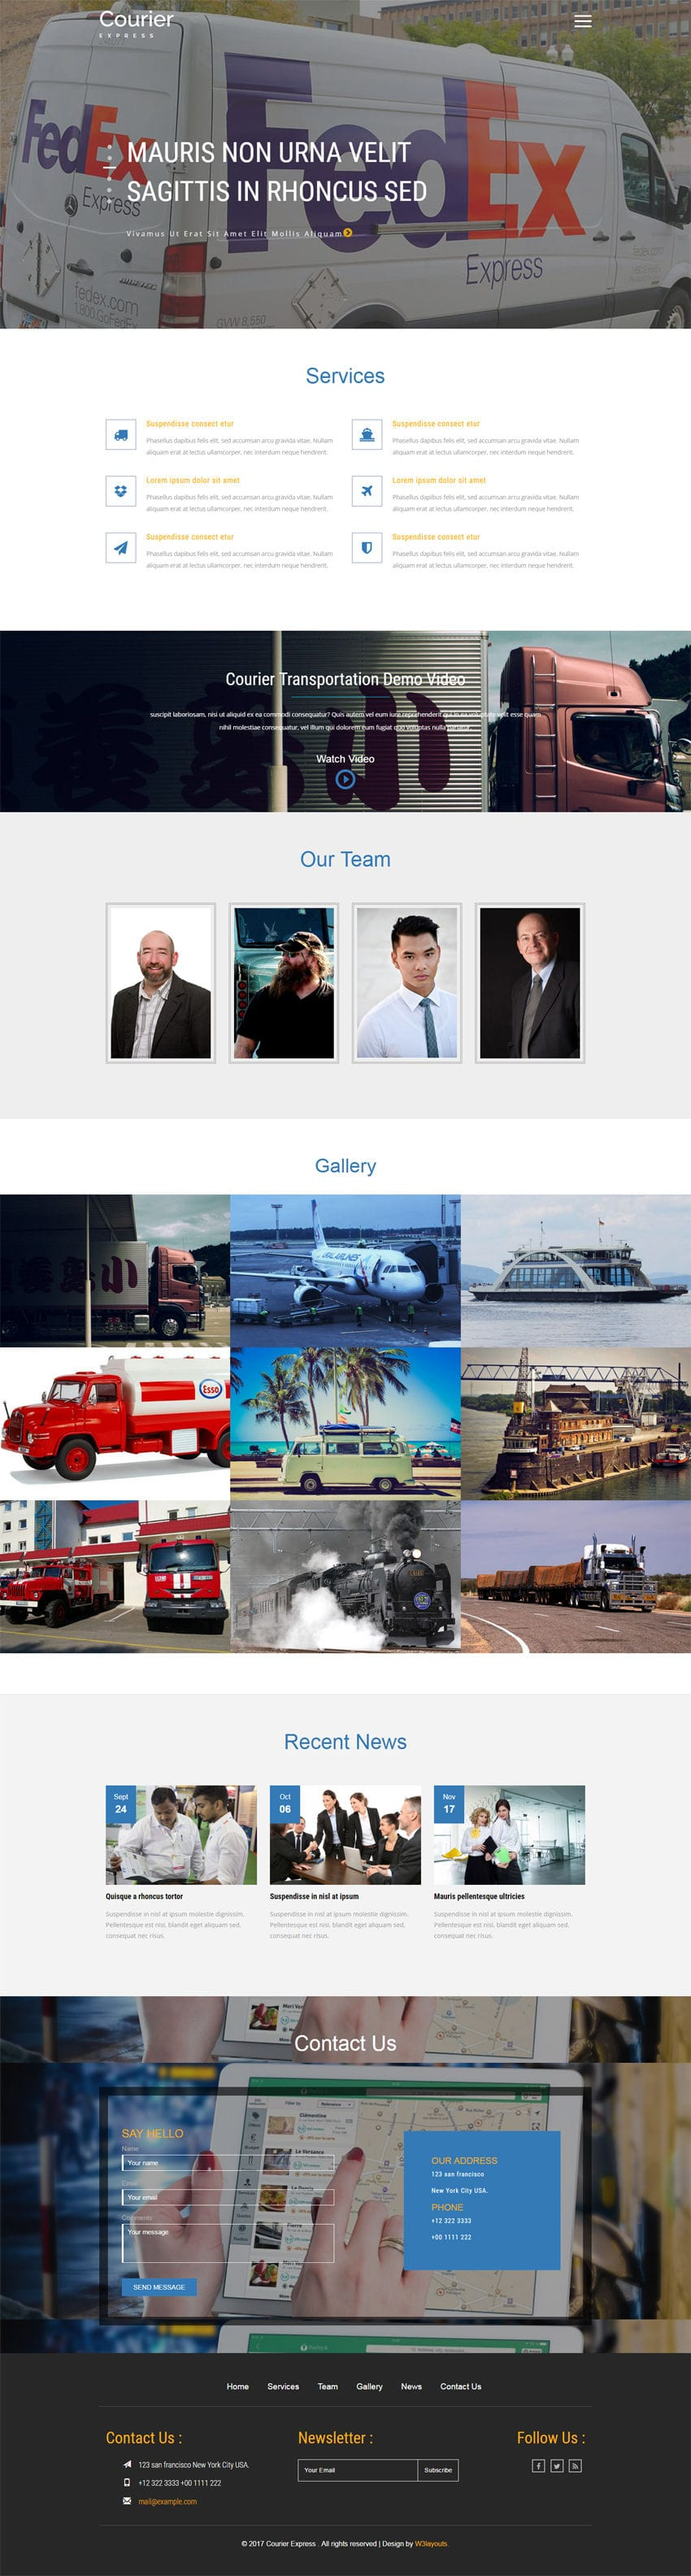 Courier Express a Transport Category Bootstrap Responsive Web Template